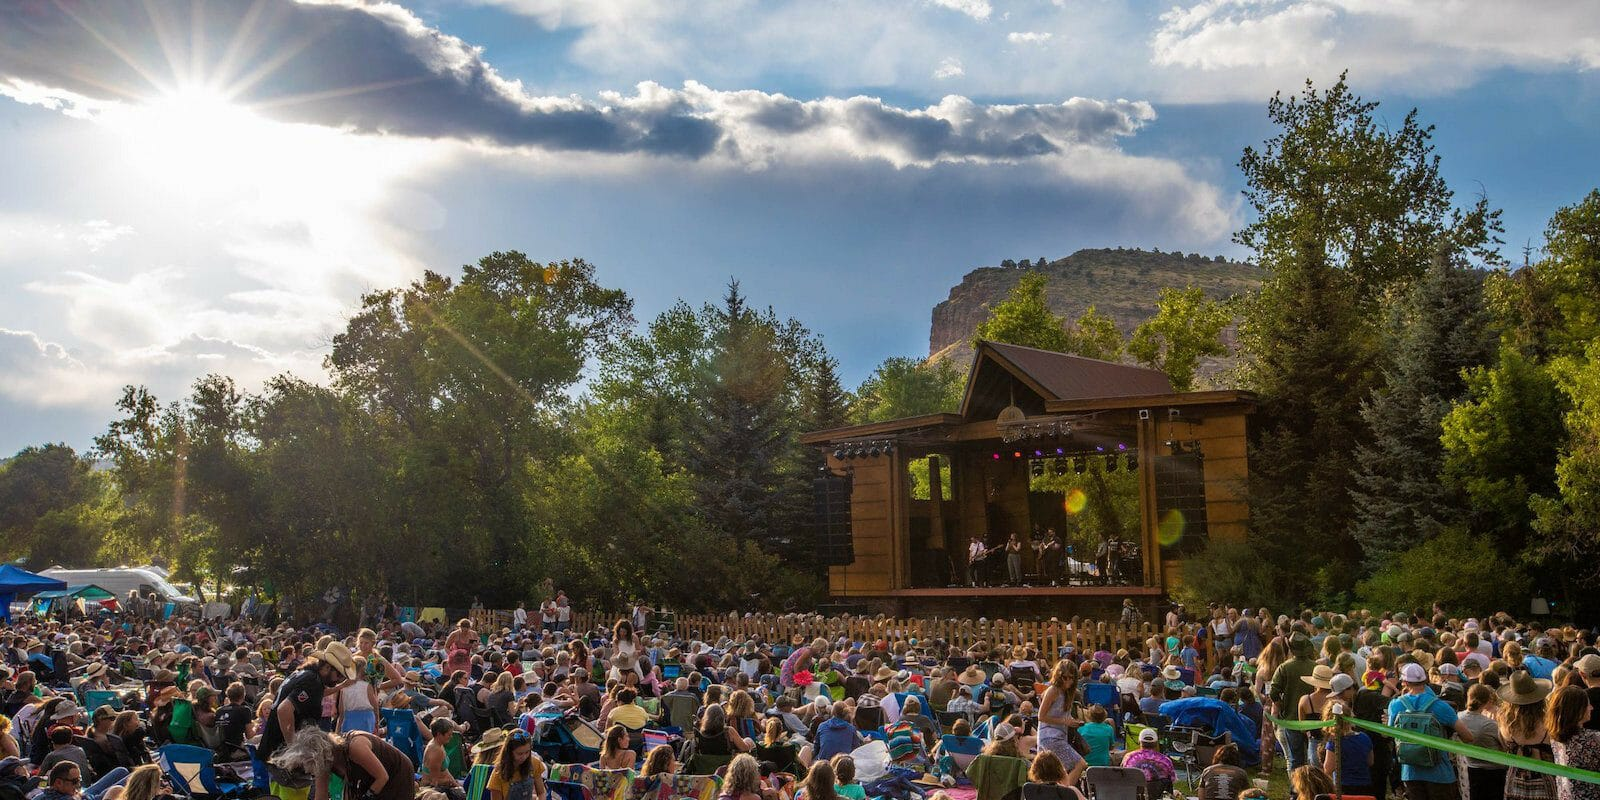 Image of the crowd at the Rocky Mountain Folks Festival in Lyons, Colorado